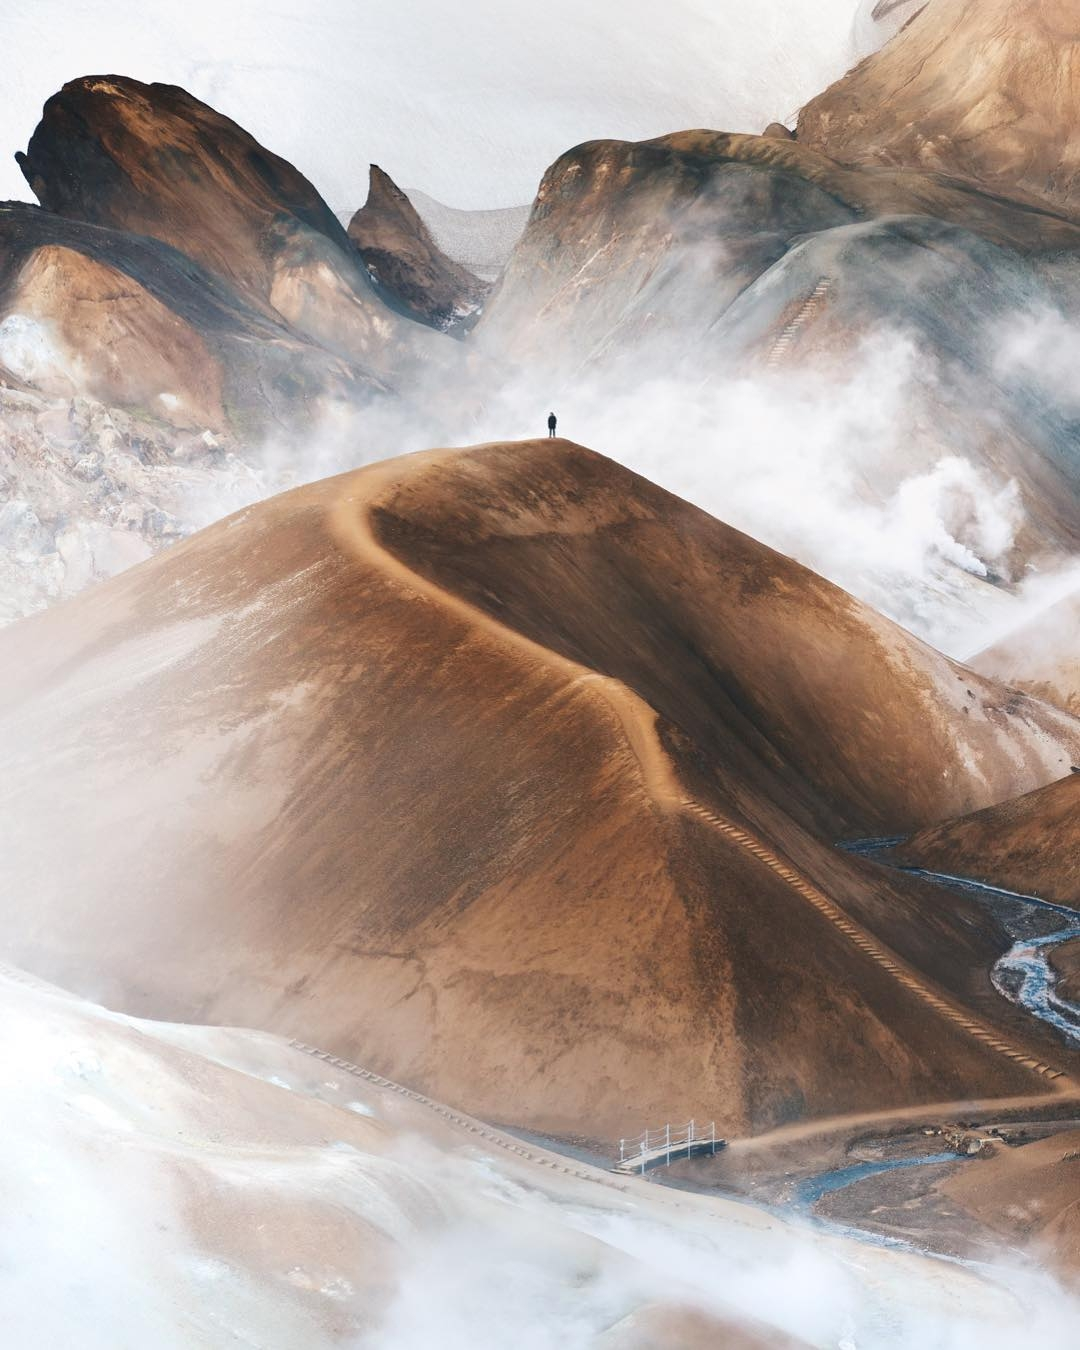 Dreamful Spectacular Photograph - photogrist | ello